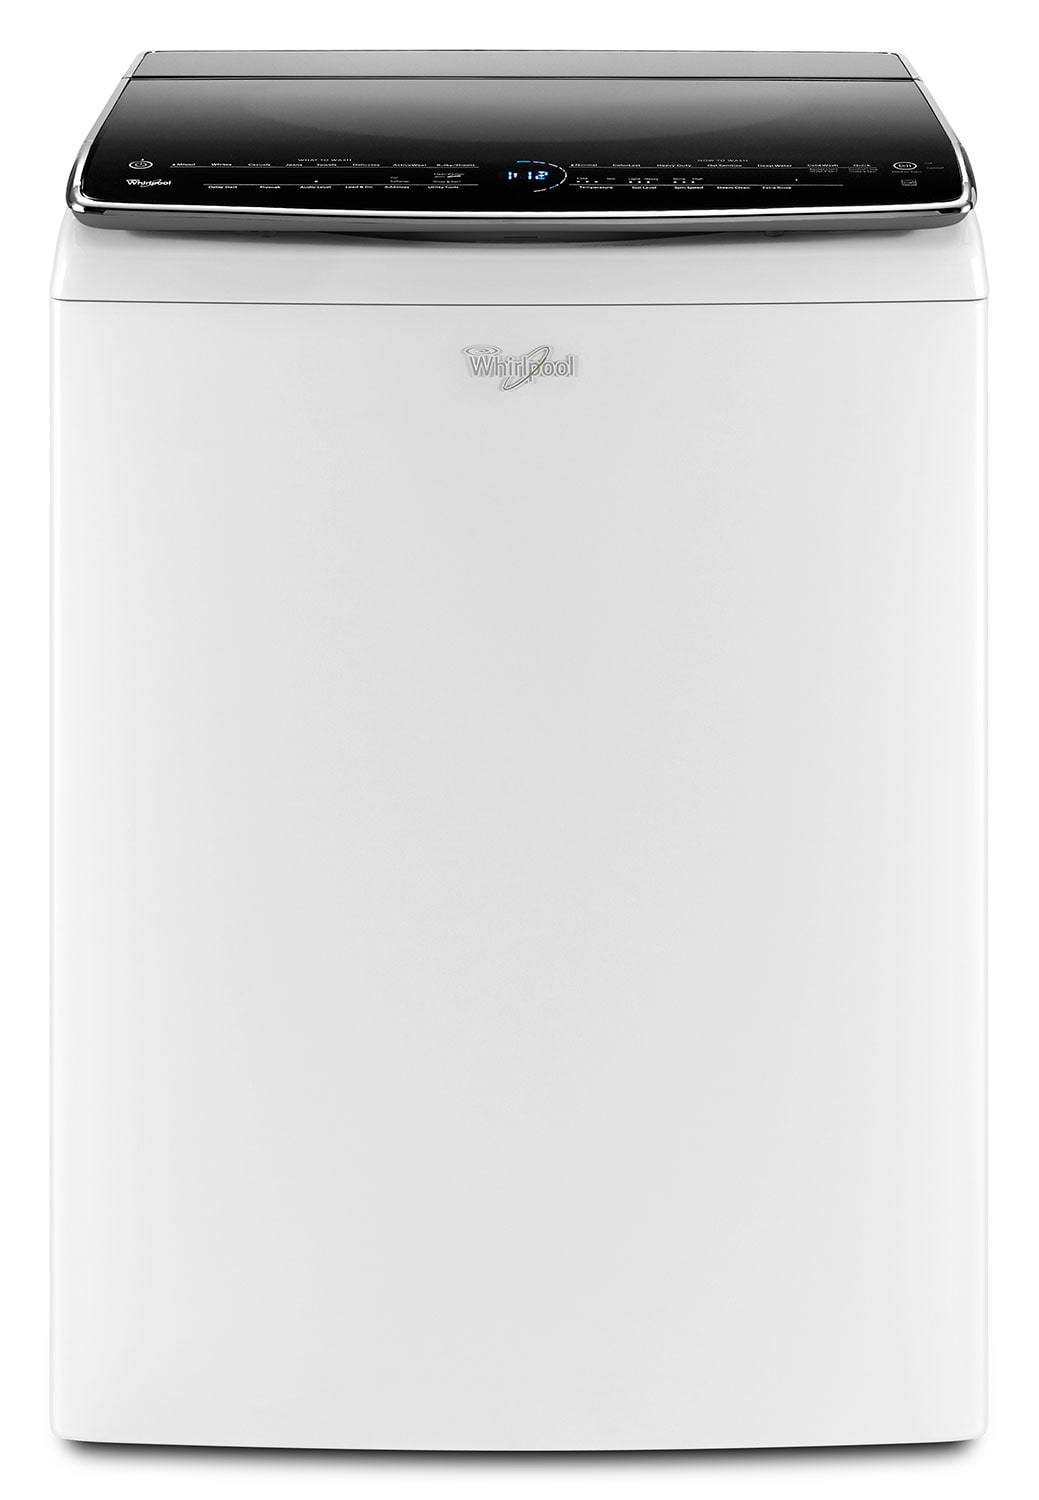 Whirlpool White Top-Load Washer (6.2 Cu. Ft.) - WTW9500EW